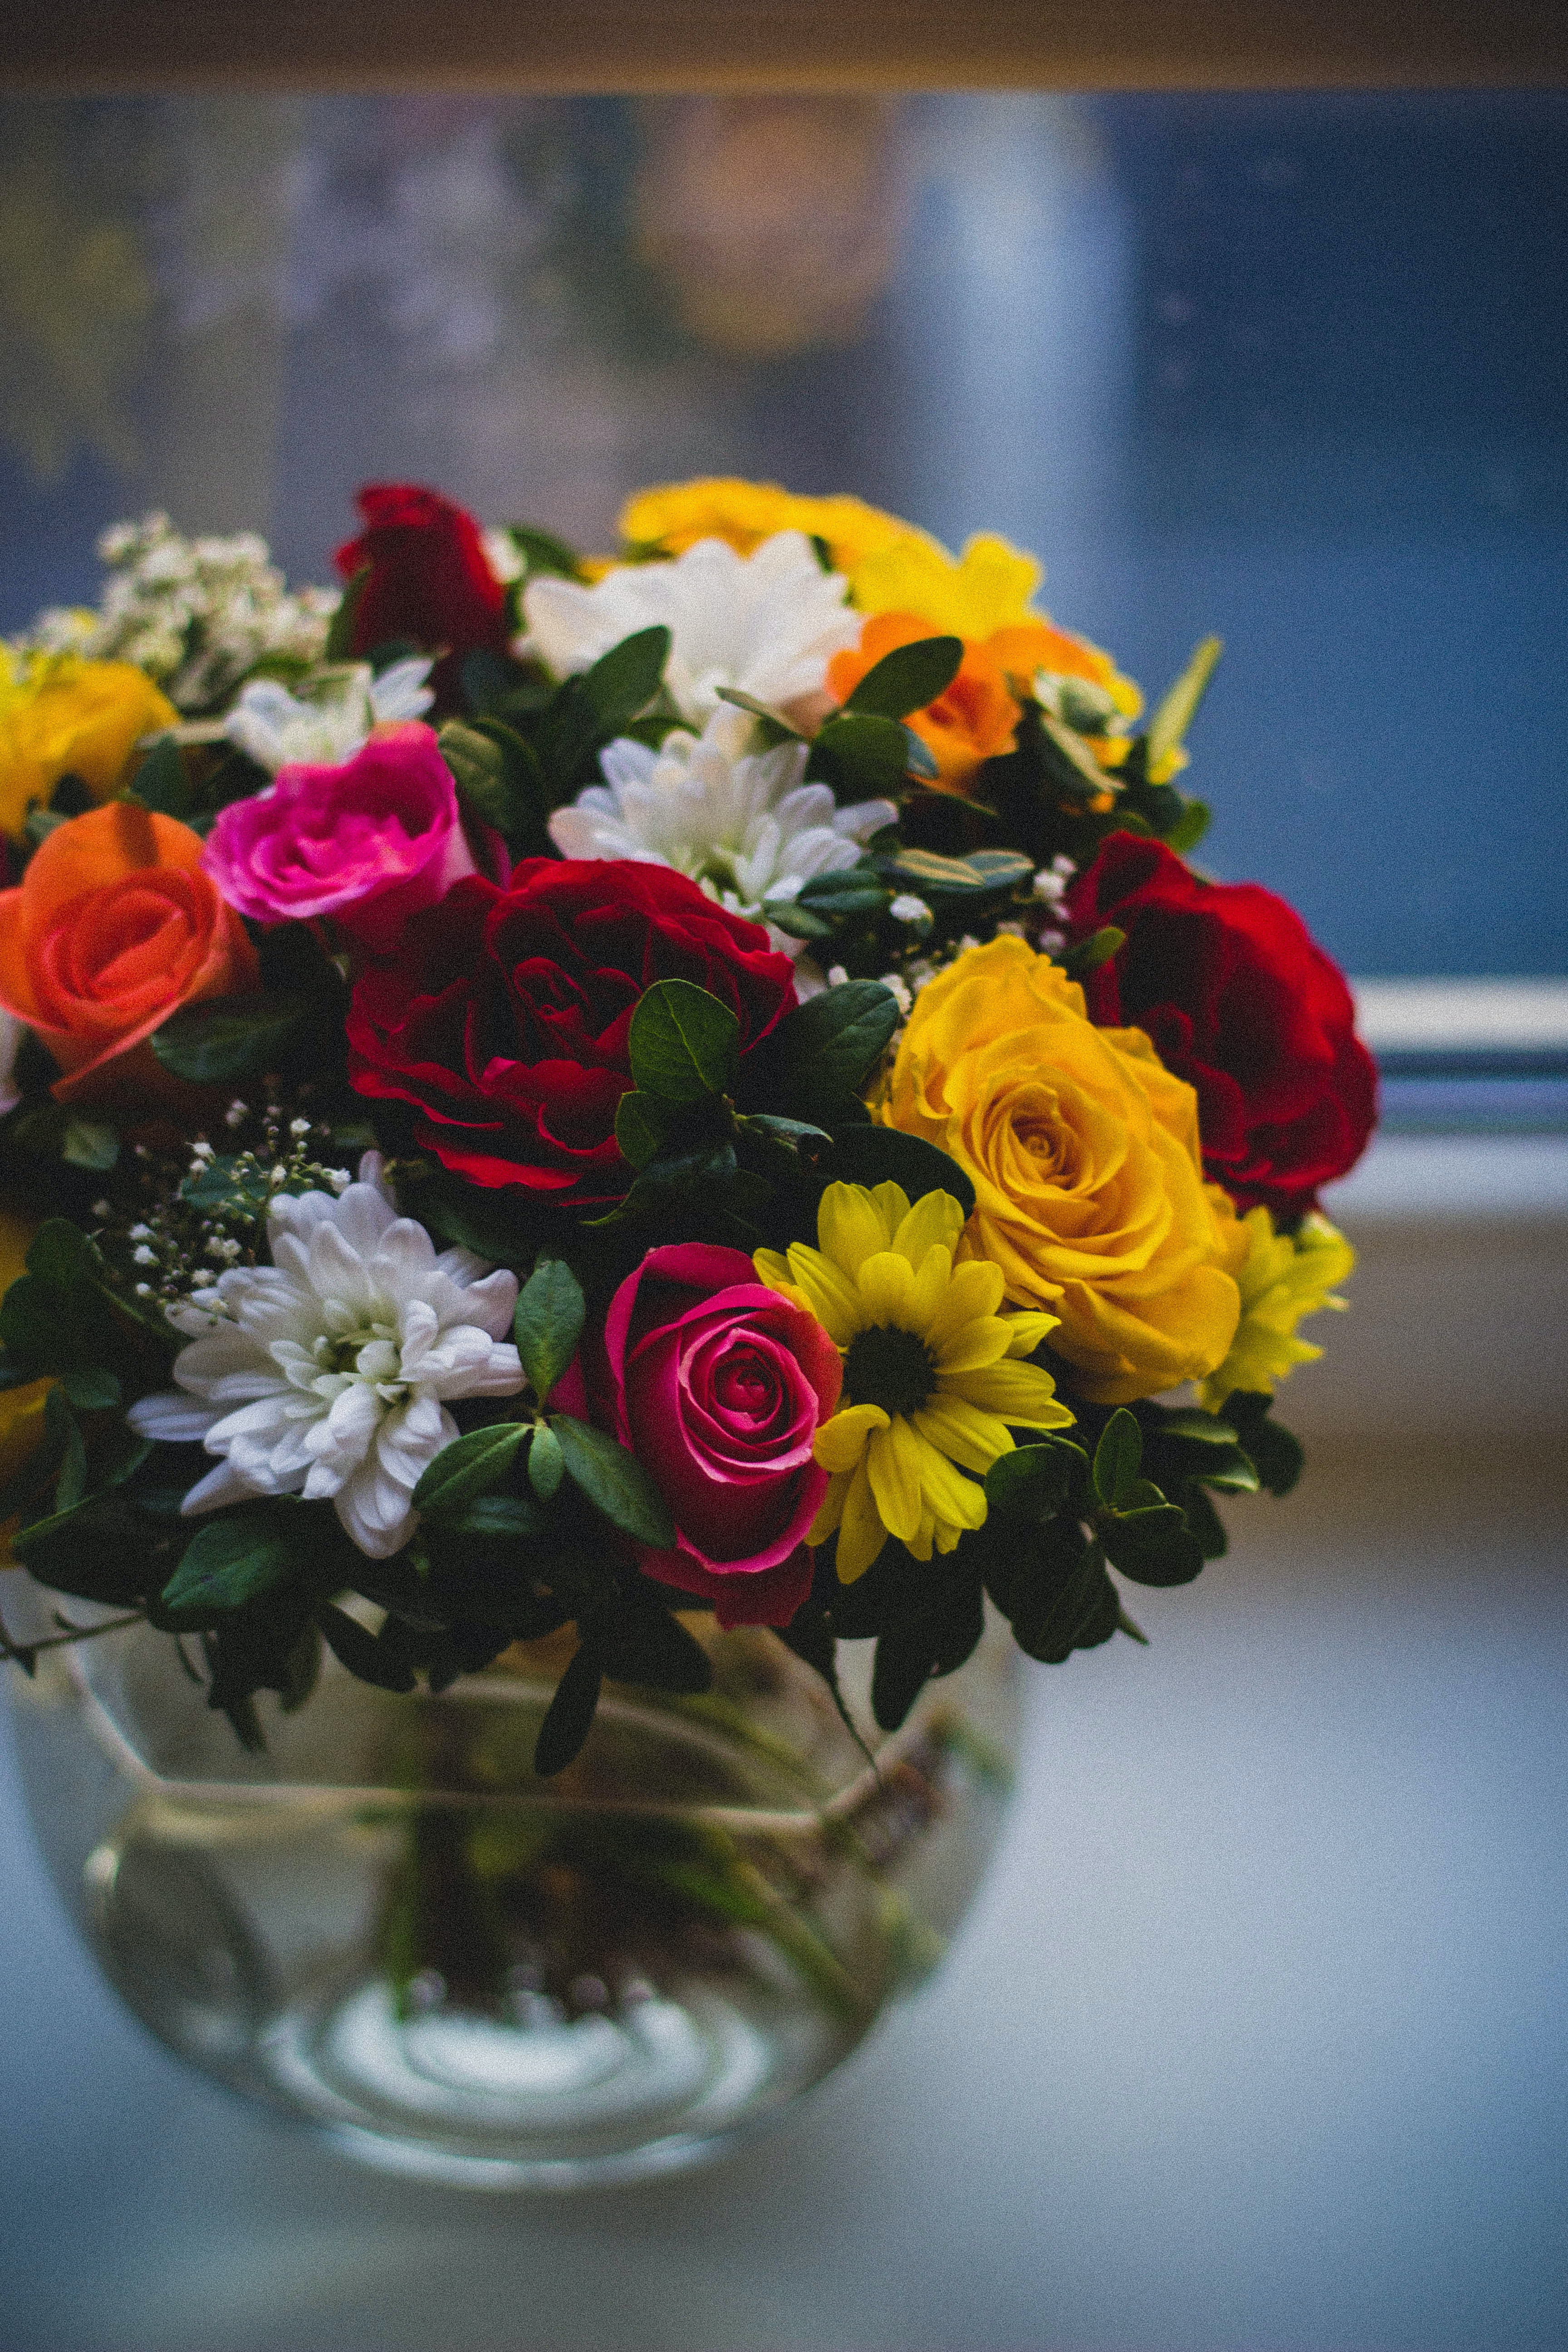 1000 interesting flower arrangements photos pexels free stock search for colors eg color blue mightylinksfo